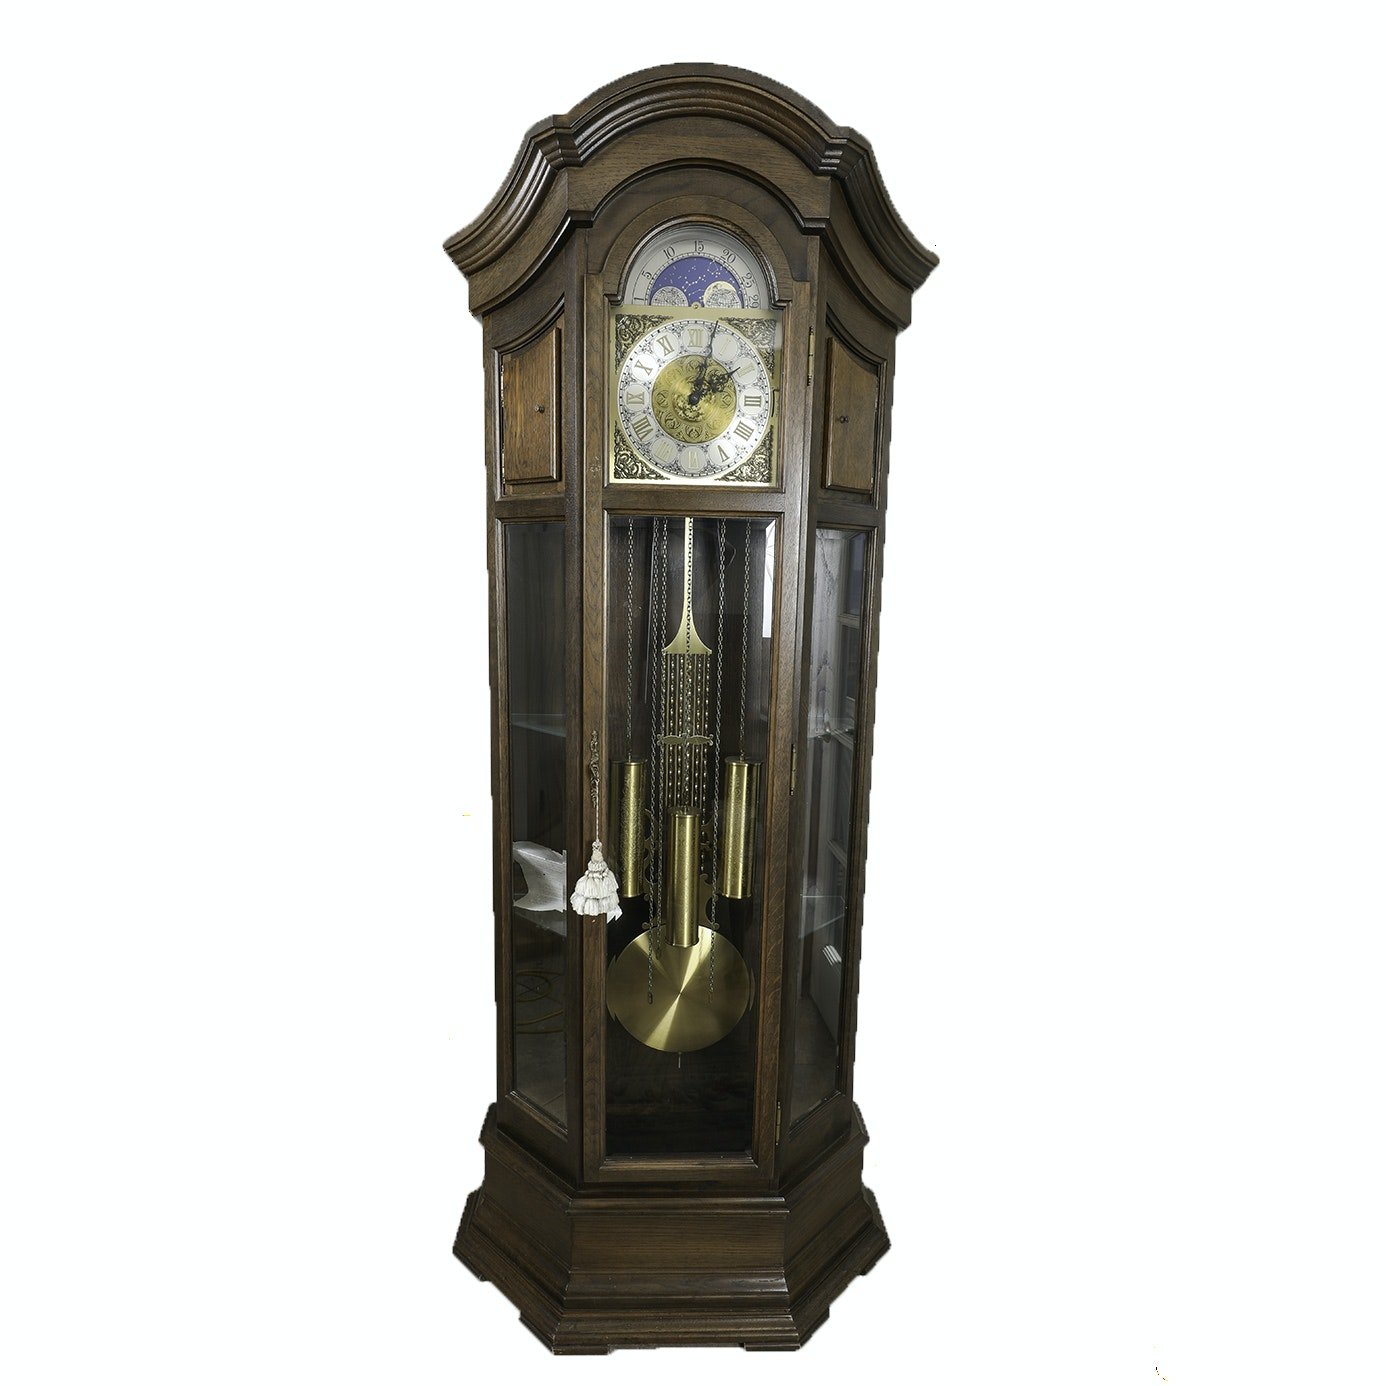 Western German Longcase Great Grandfather Clock with Six Glass Display Shelves